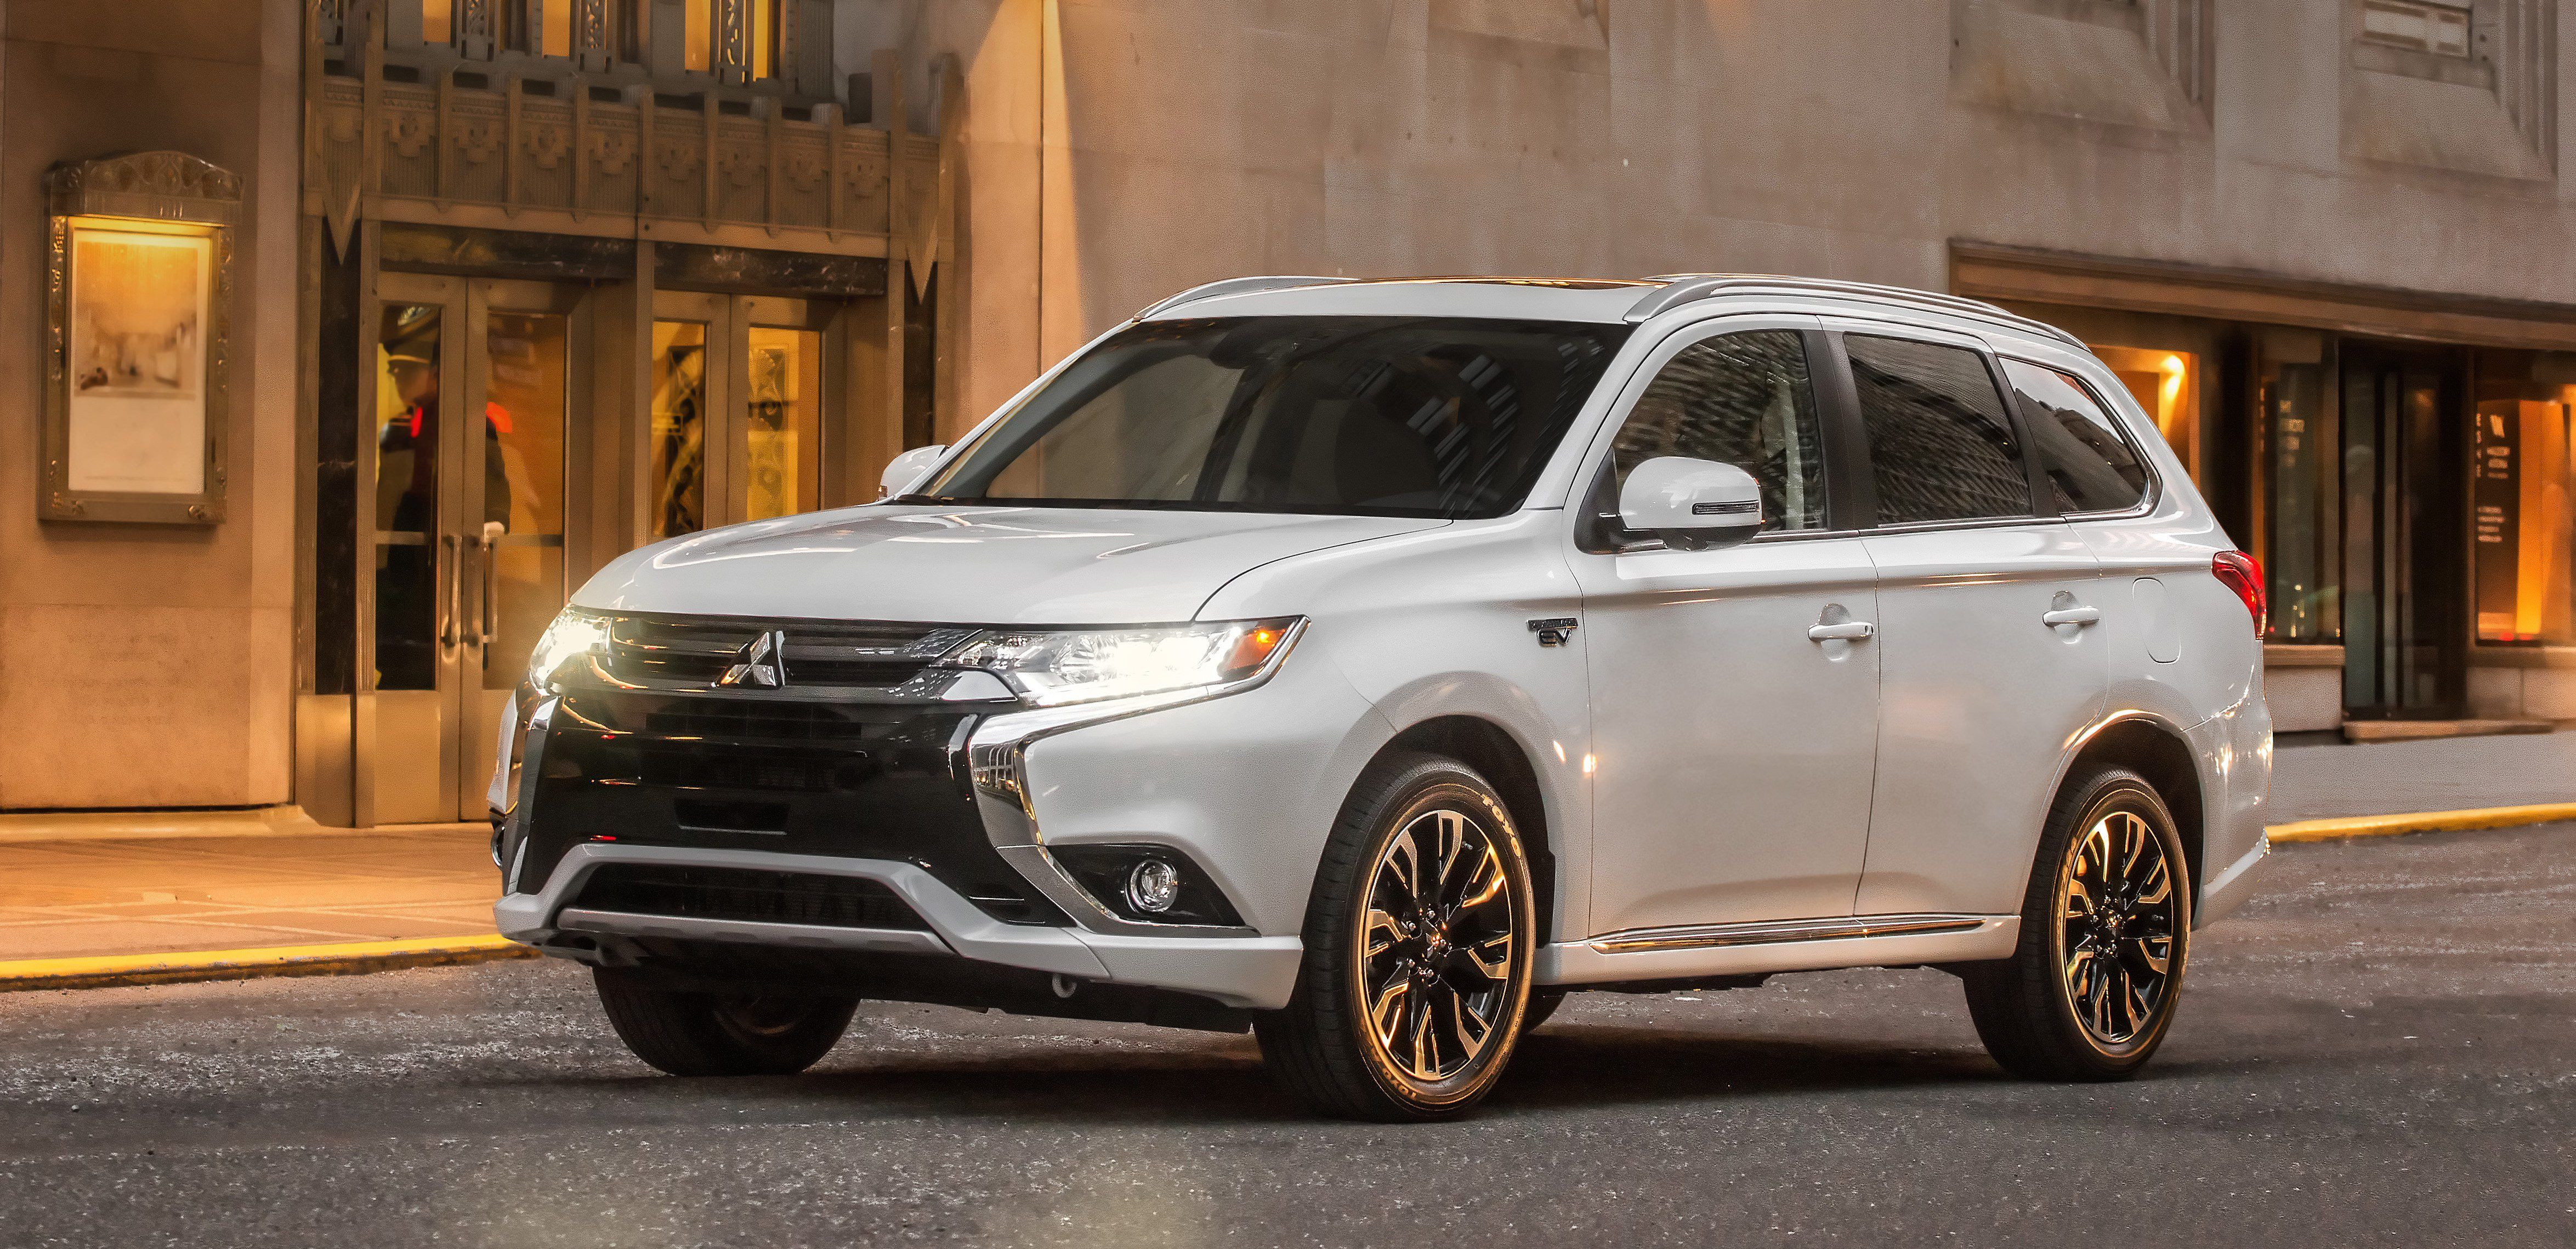 It looks like mitsubishi is in no hurry to launch the us version of its best